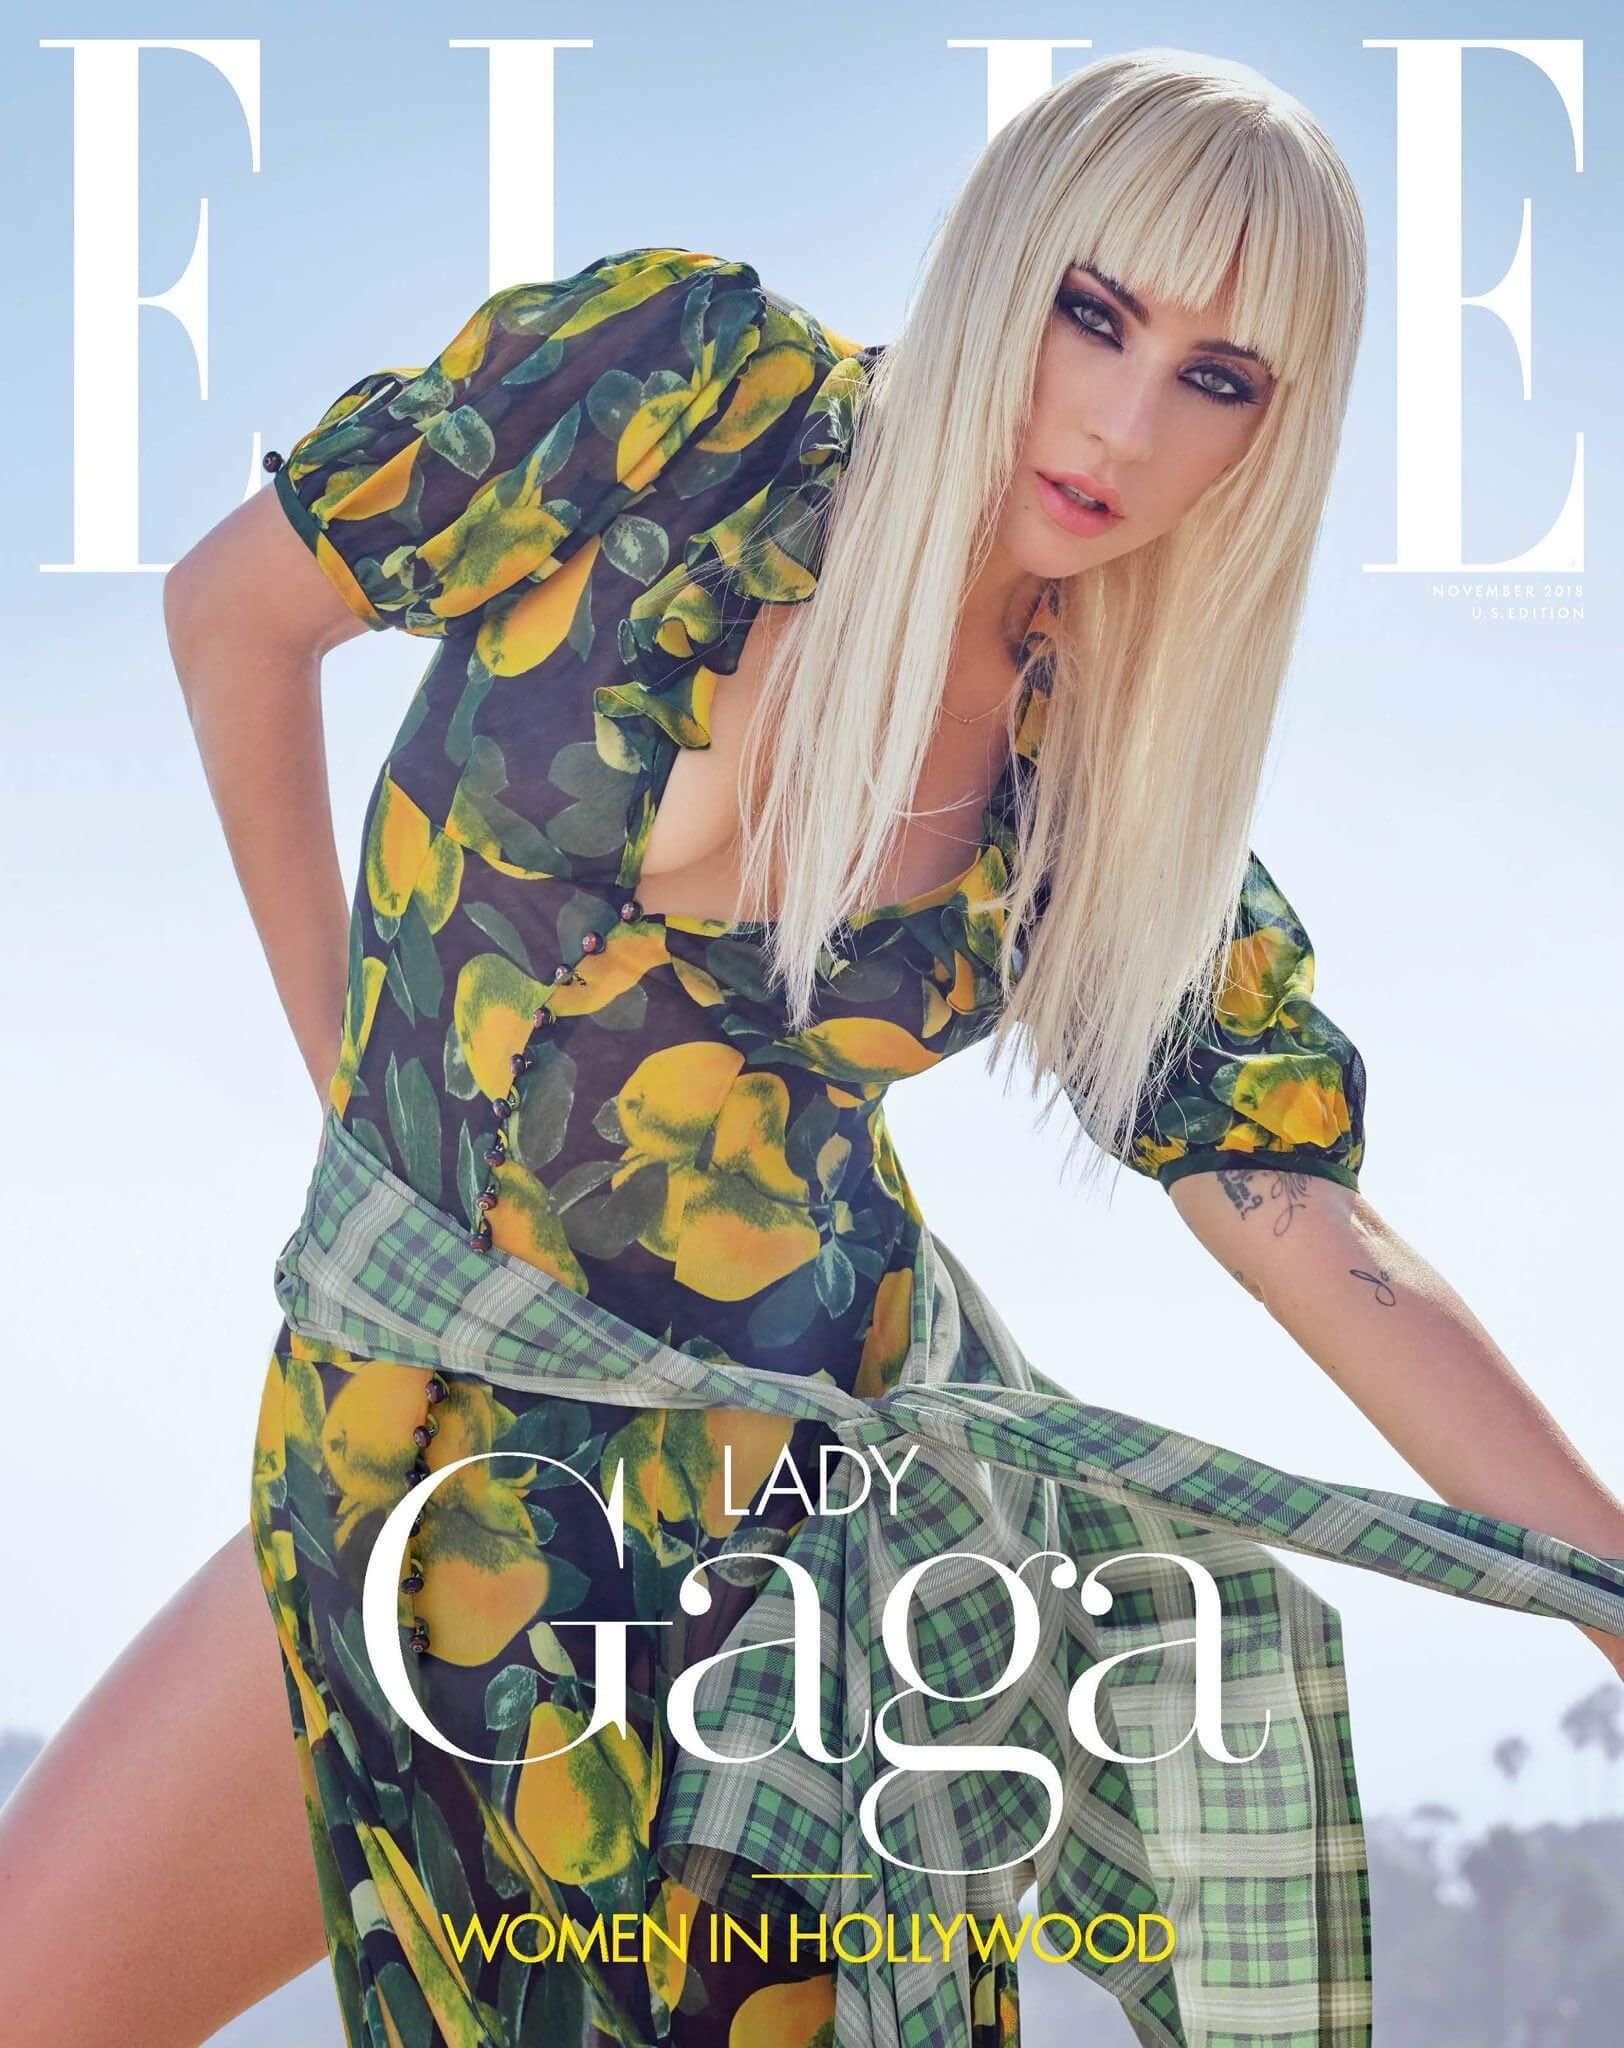 Lady Gaga Cover for Elle (November 2019)